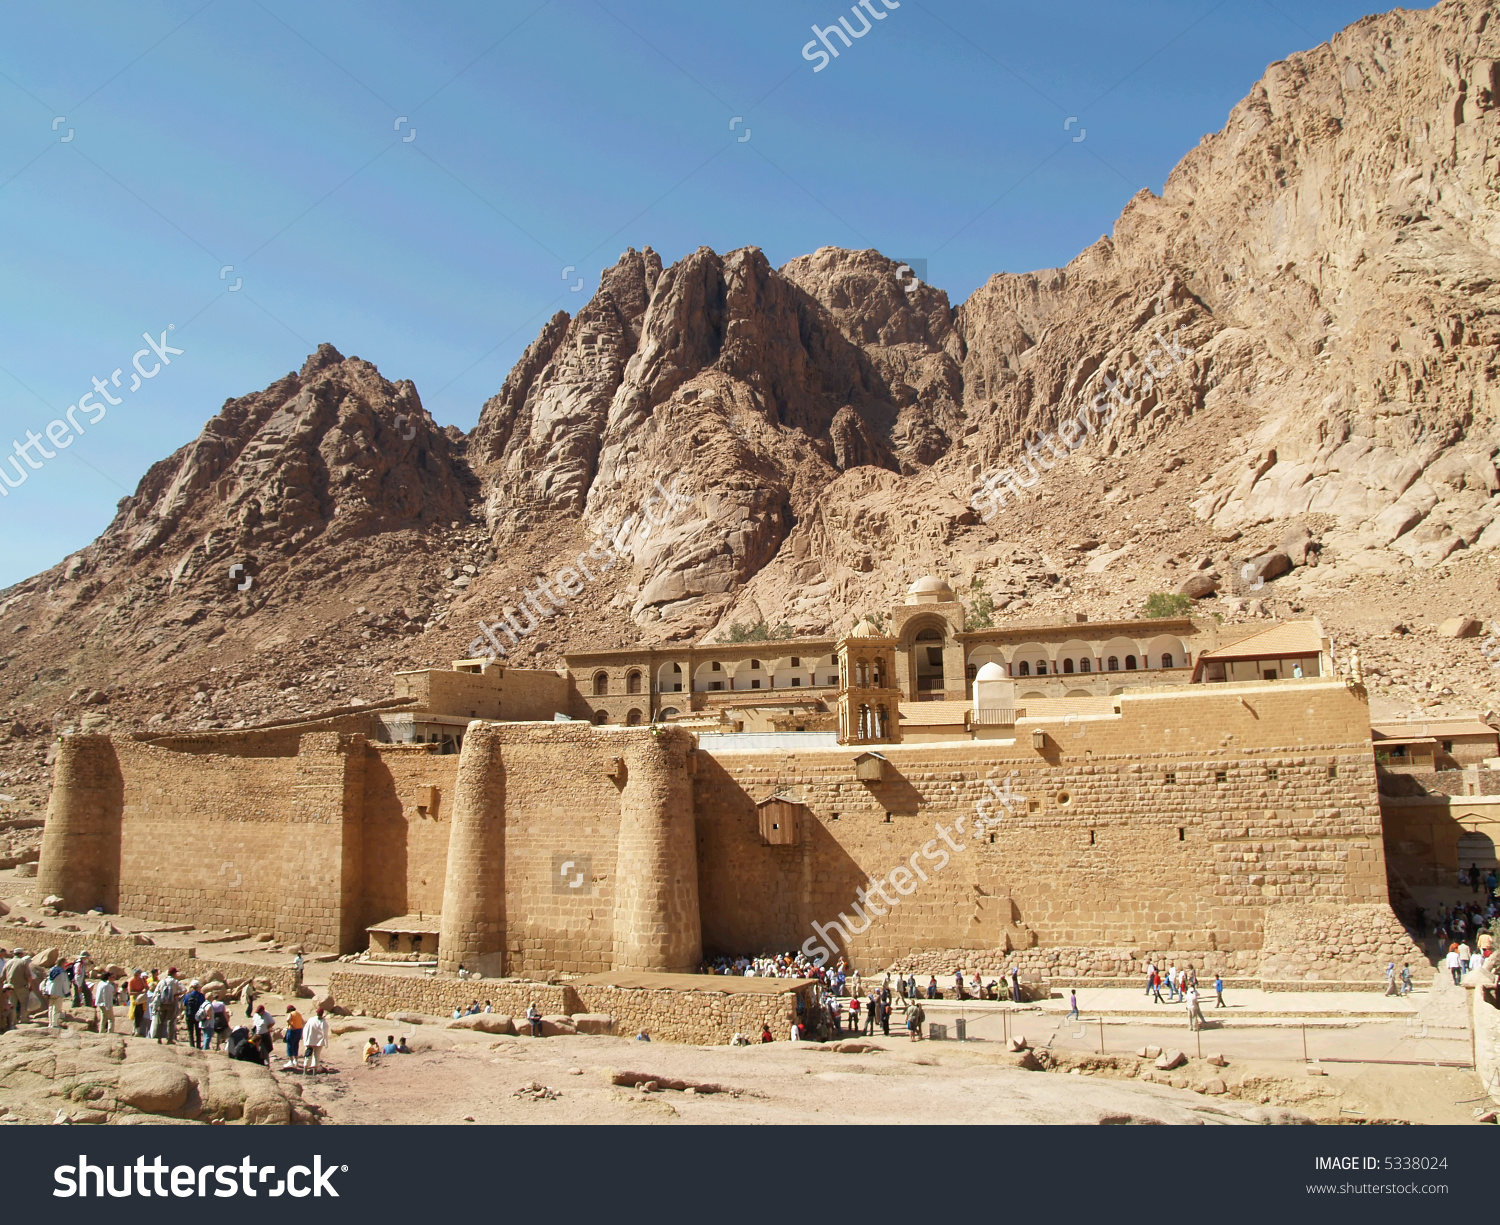 Monastery Of St. Catherine, Sinai, Egypt Stock Photo 5338024.